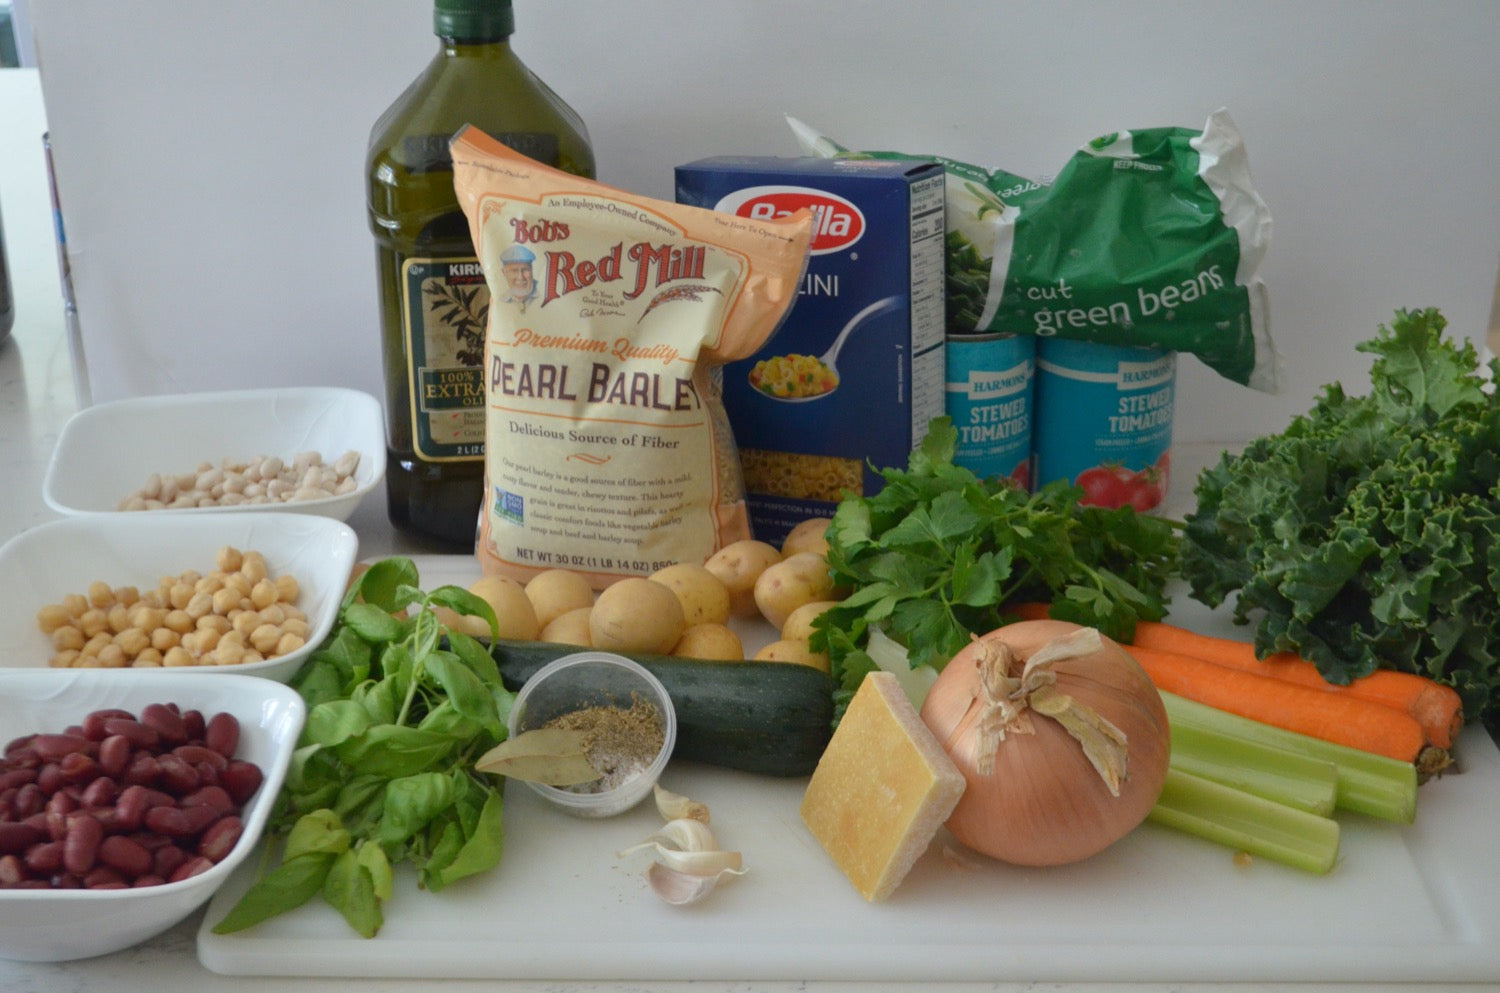 Ingredients for Authentic Italian Minestrone Soup